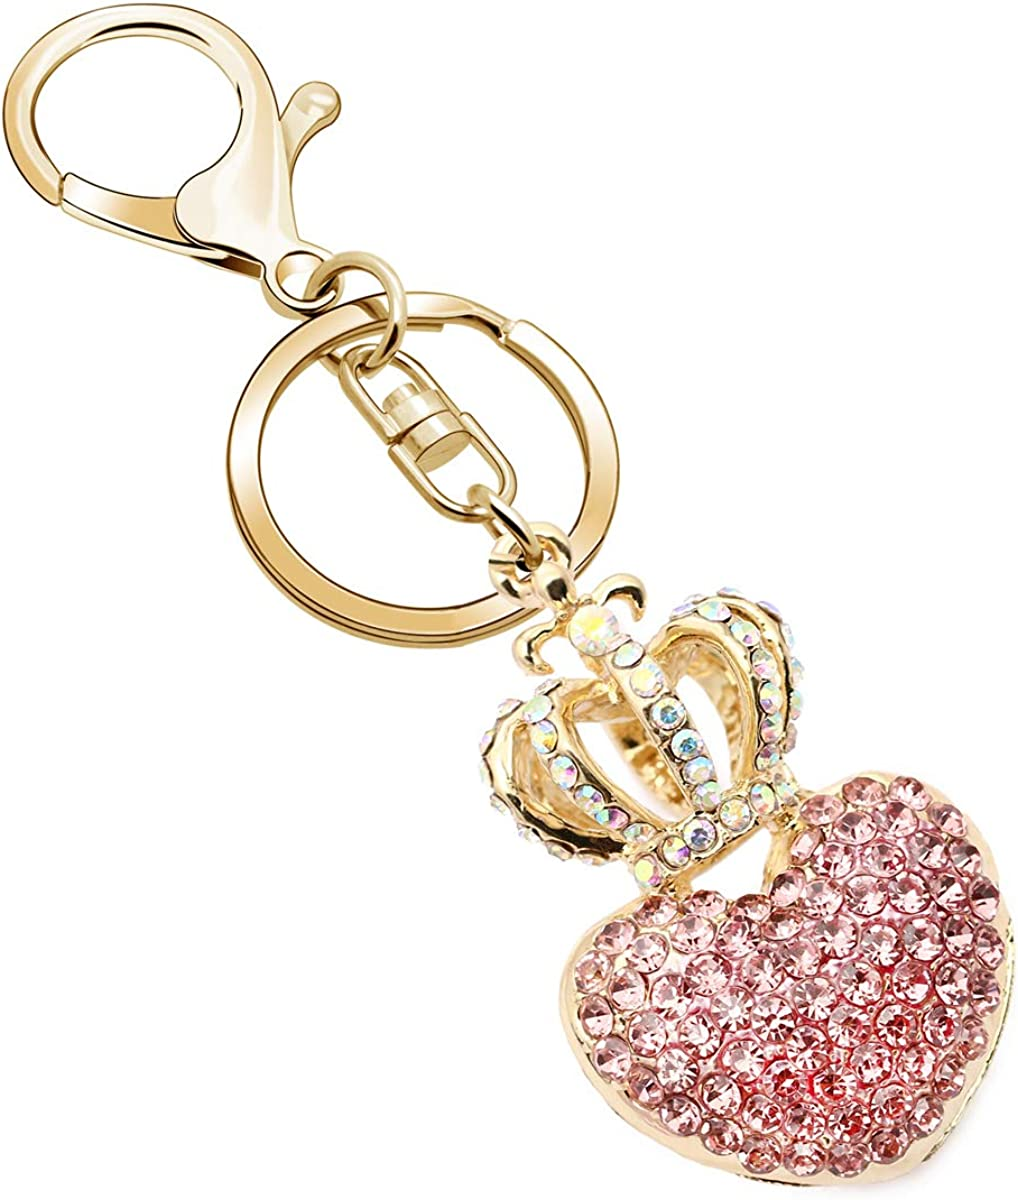 JJIA Keychains for Women, Best Friend Girlfriend Gifts Love Heart and Crown Crystal Rhinestone Keychain Key Chain Purse Pendant Handbag Bag Decoration, Pink,